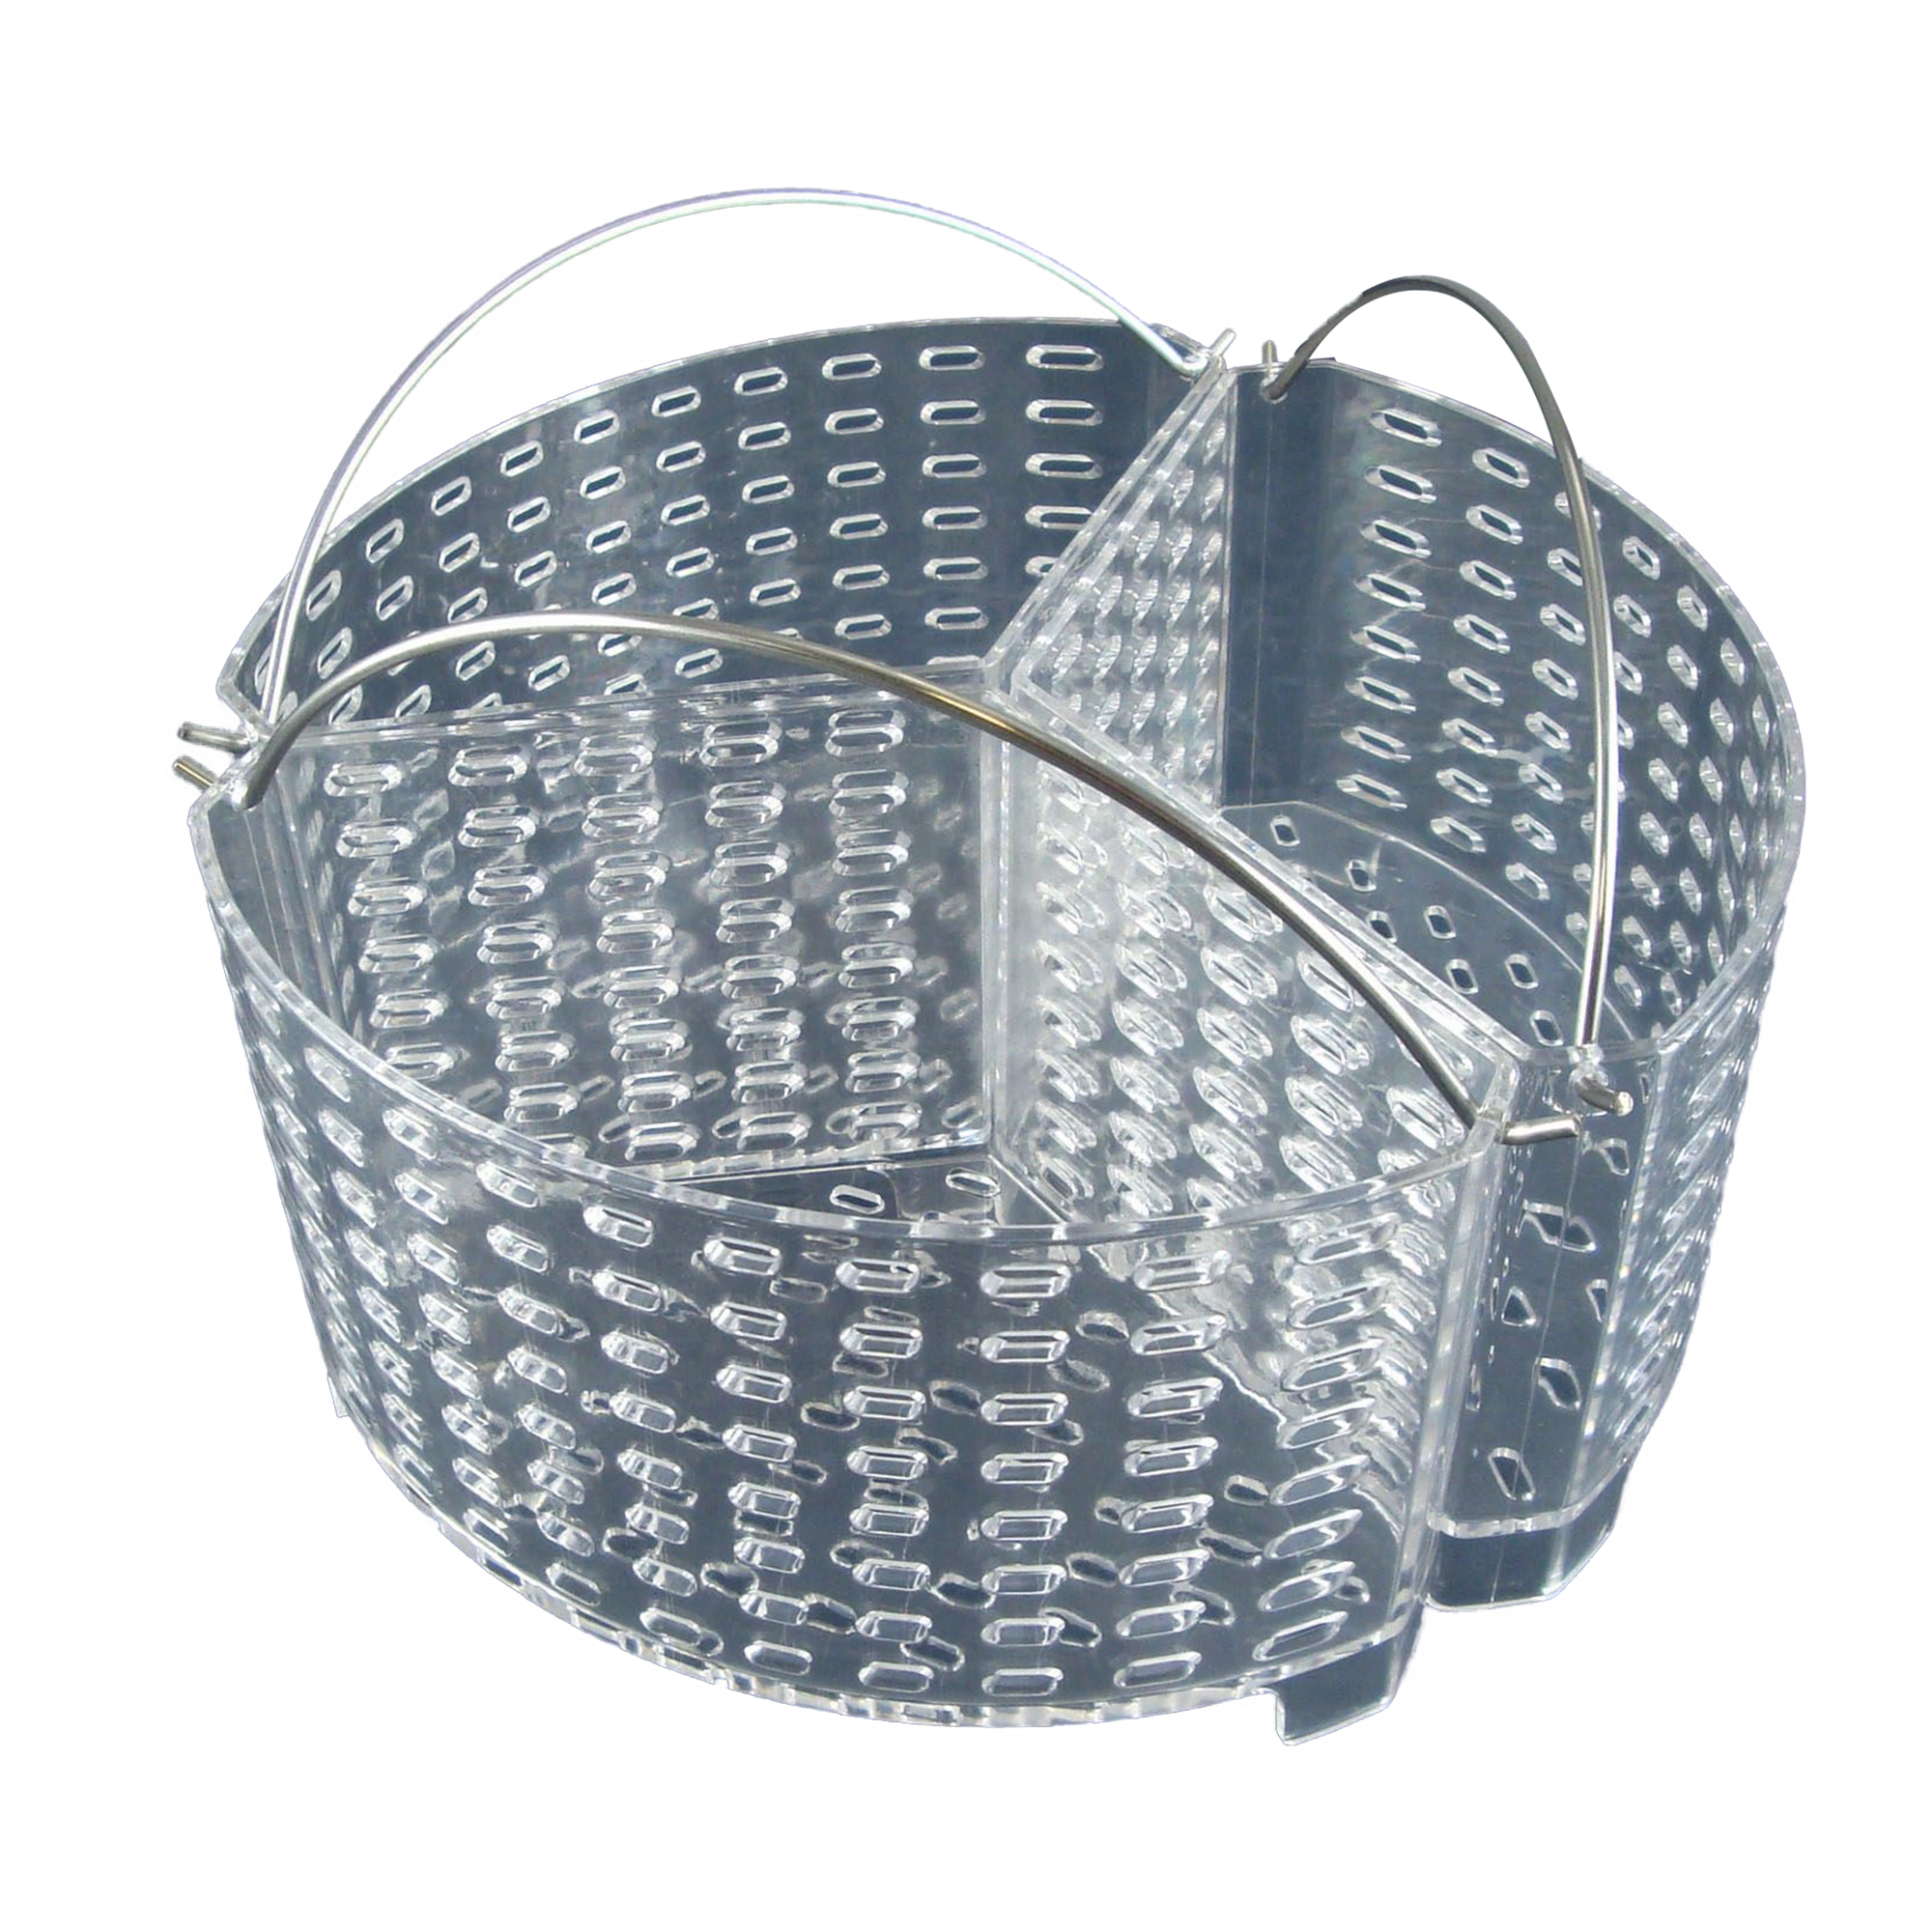 StyleAsia 3 Section Vegetable Steamer Basket - Premium Quality Steamer Basket with Easy Grip Handles for Healthy Cooking, Veggies, Seafood, Fruits - Easy to Clean and Use